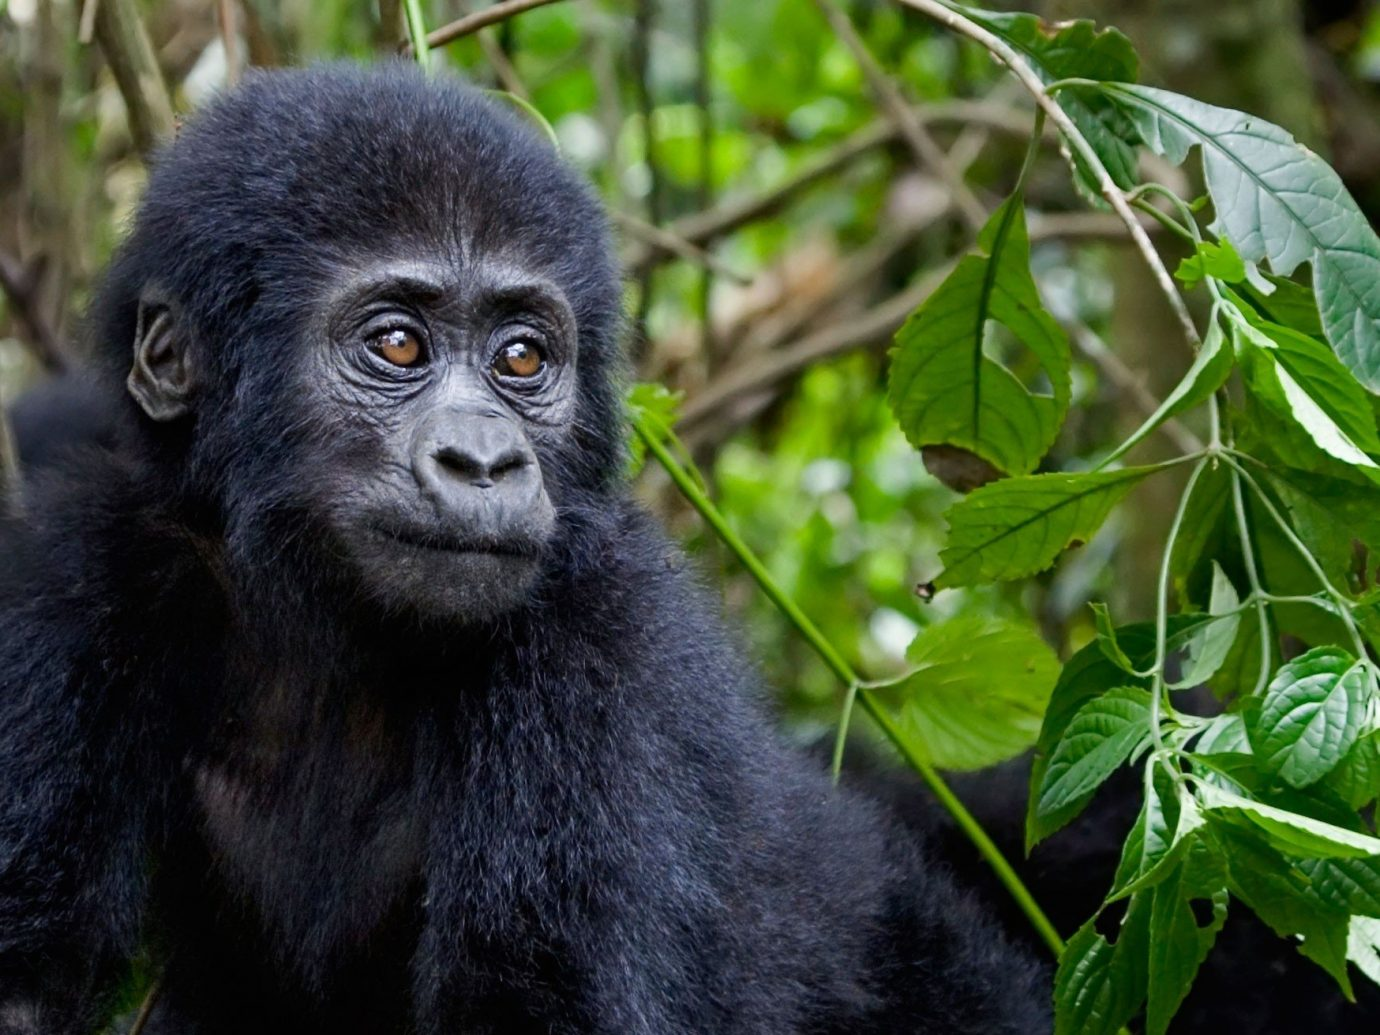 Trip Ideas mammal primate animal tree outdoor western gorilla black vertebrate great ape plant Wildlife fauna ape chimpanzee new world monkey common chimpanzee zoo Jungle